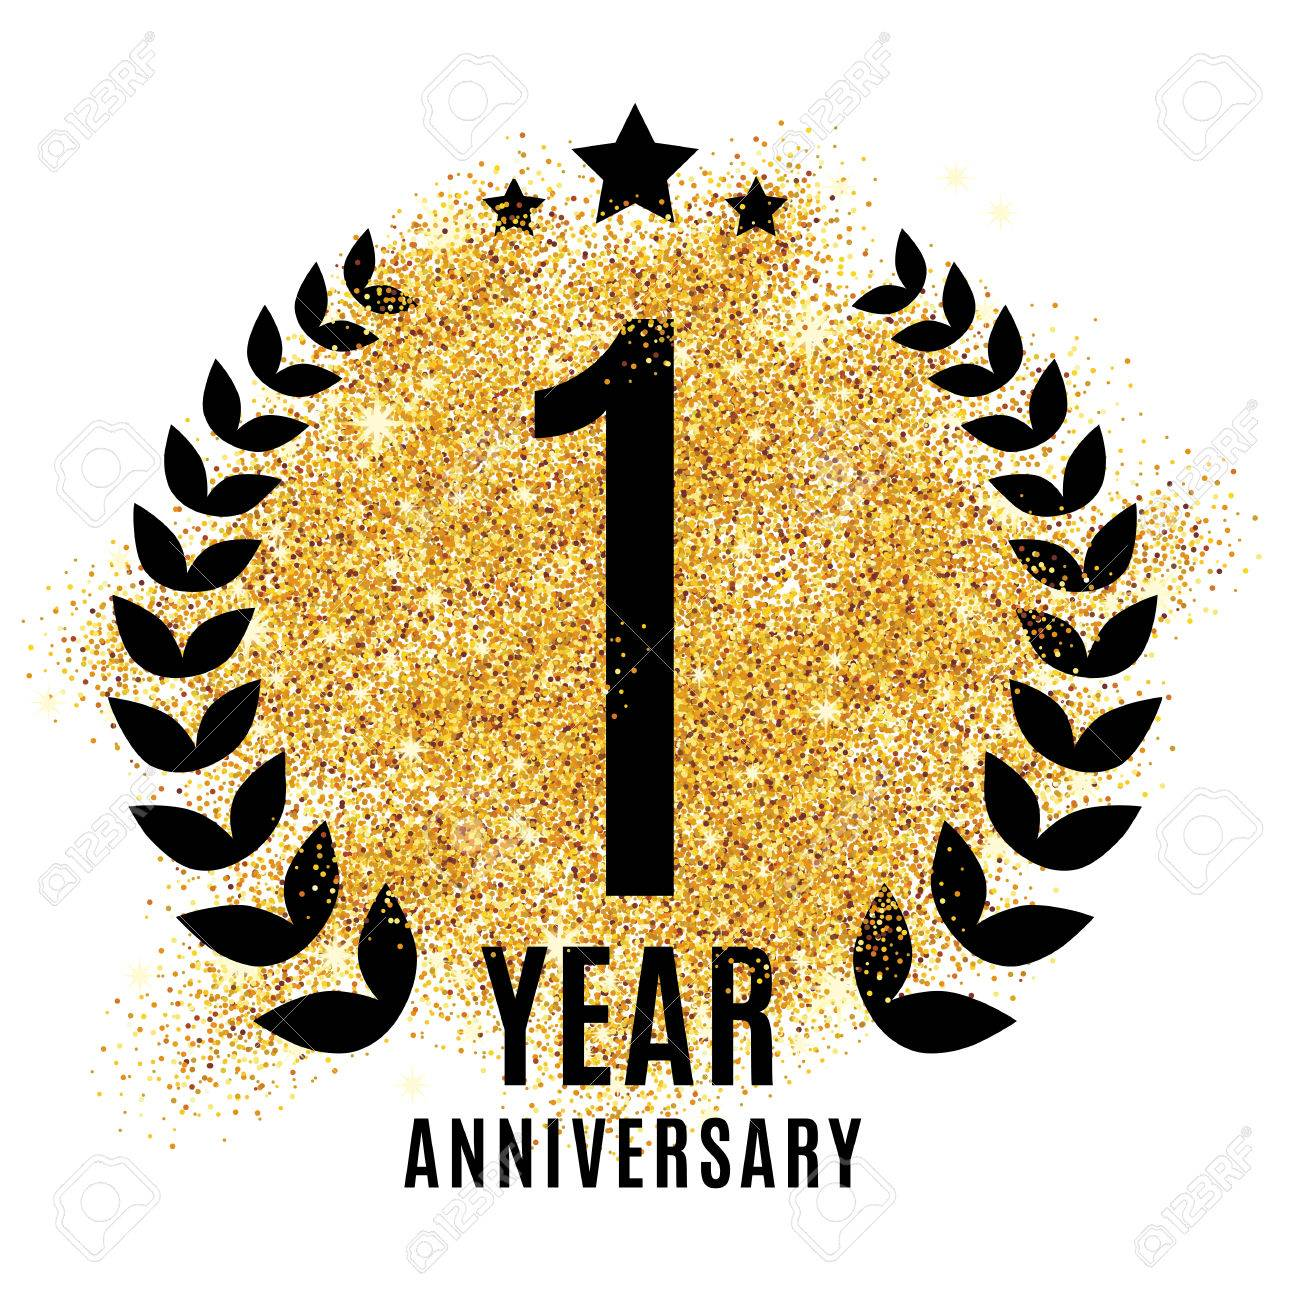 One Year Golden Anniversary Sign Gold Glitter Celebration Light Stock Photo Picture And Royalty Free Image Image 67585541